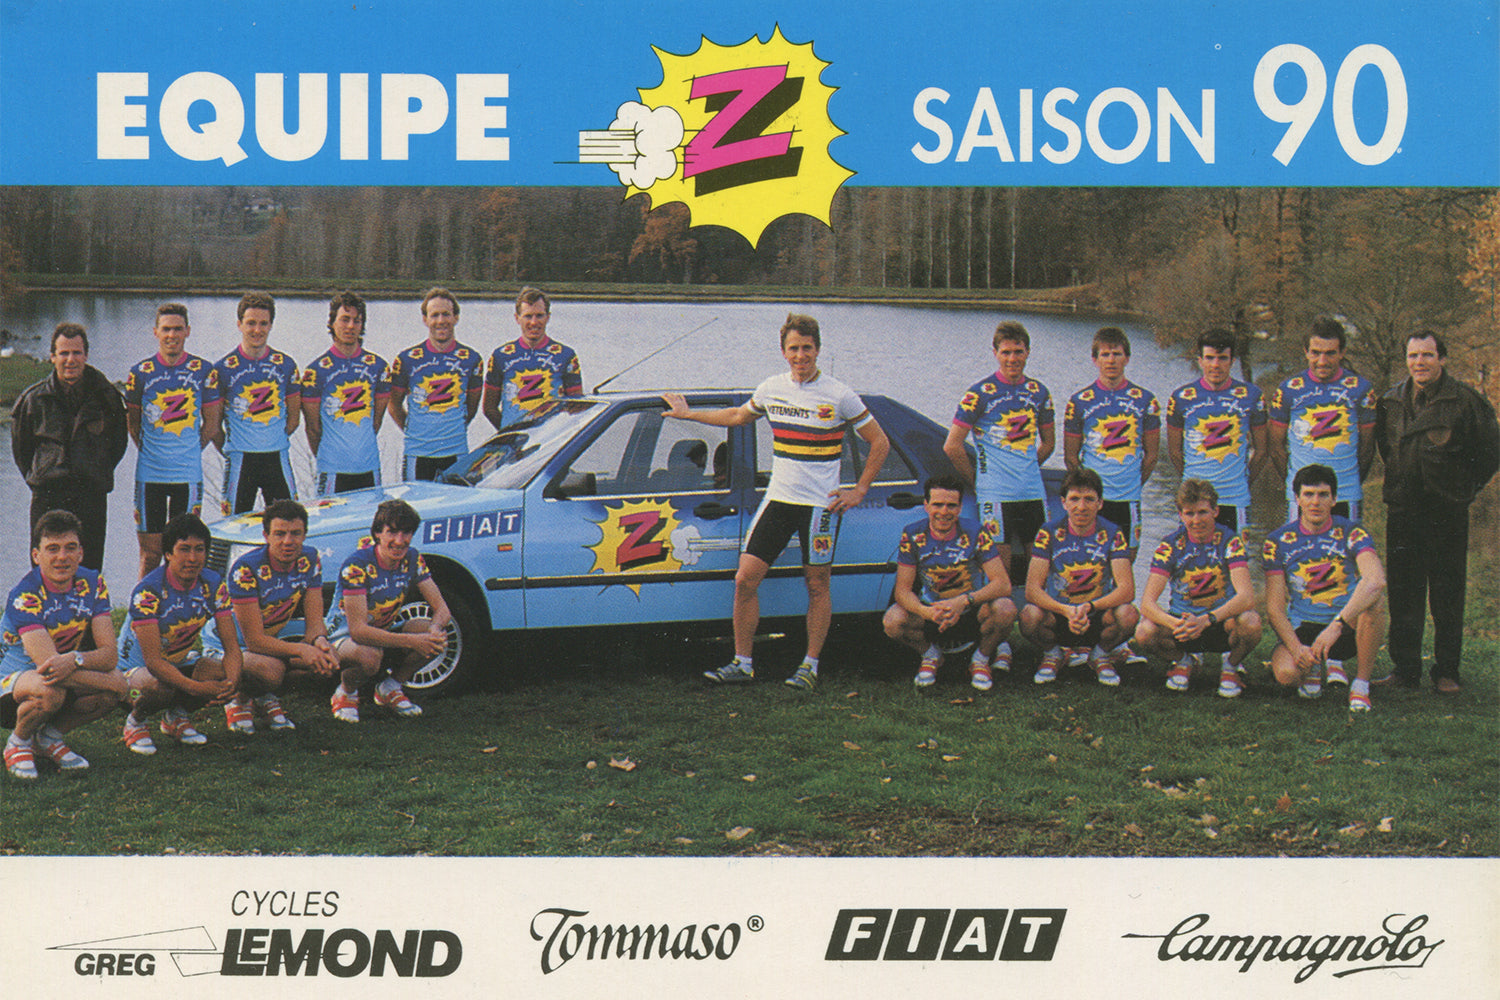 Equipe Vêtements Z-Peugeot Cycling Team postcard from 1990 with world champion Greg Lemond in the centre in his rainbow jersey.